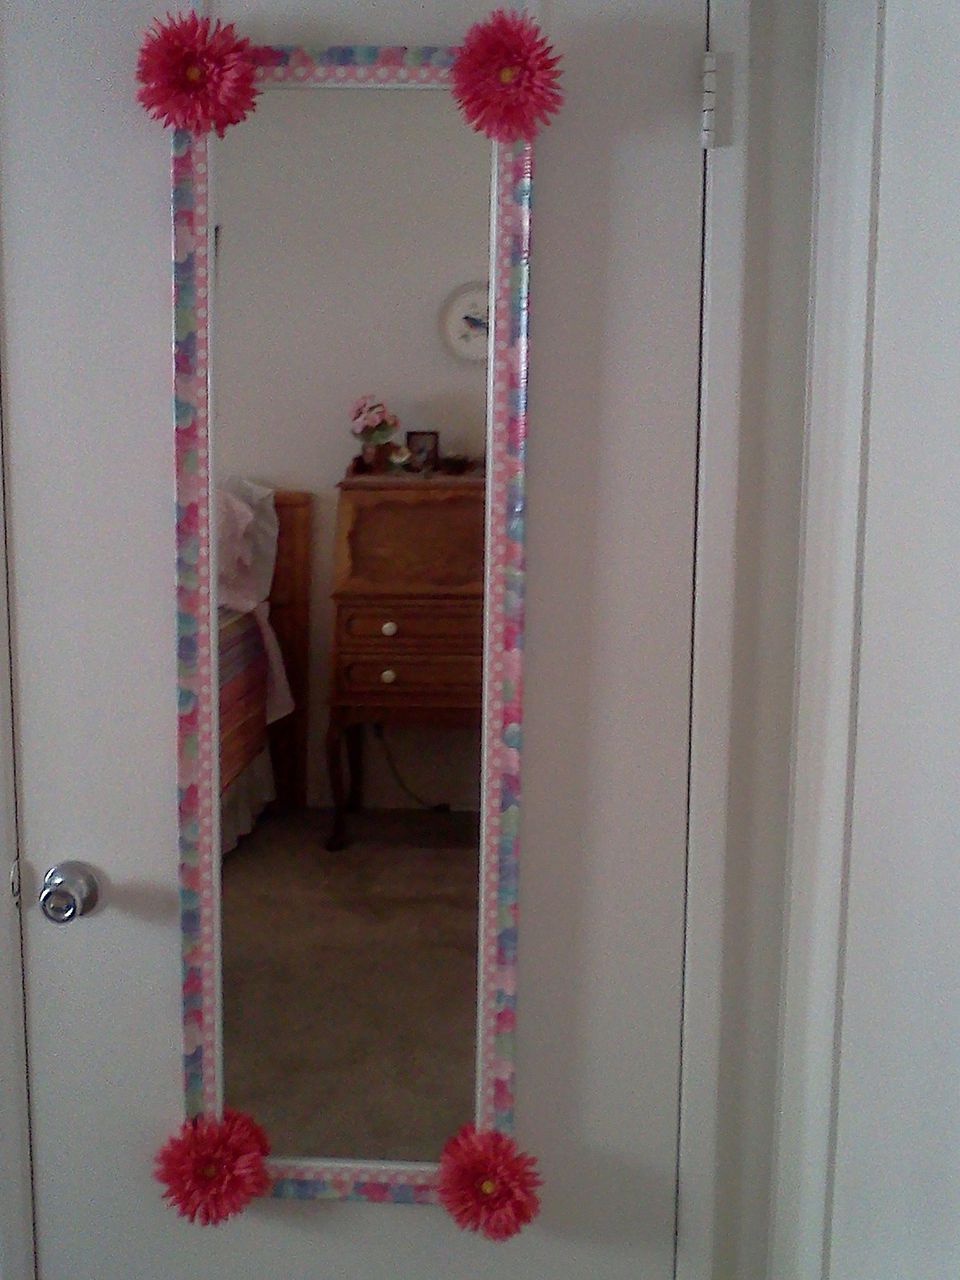 Use duct tape to decorate a mirror.